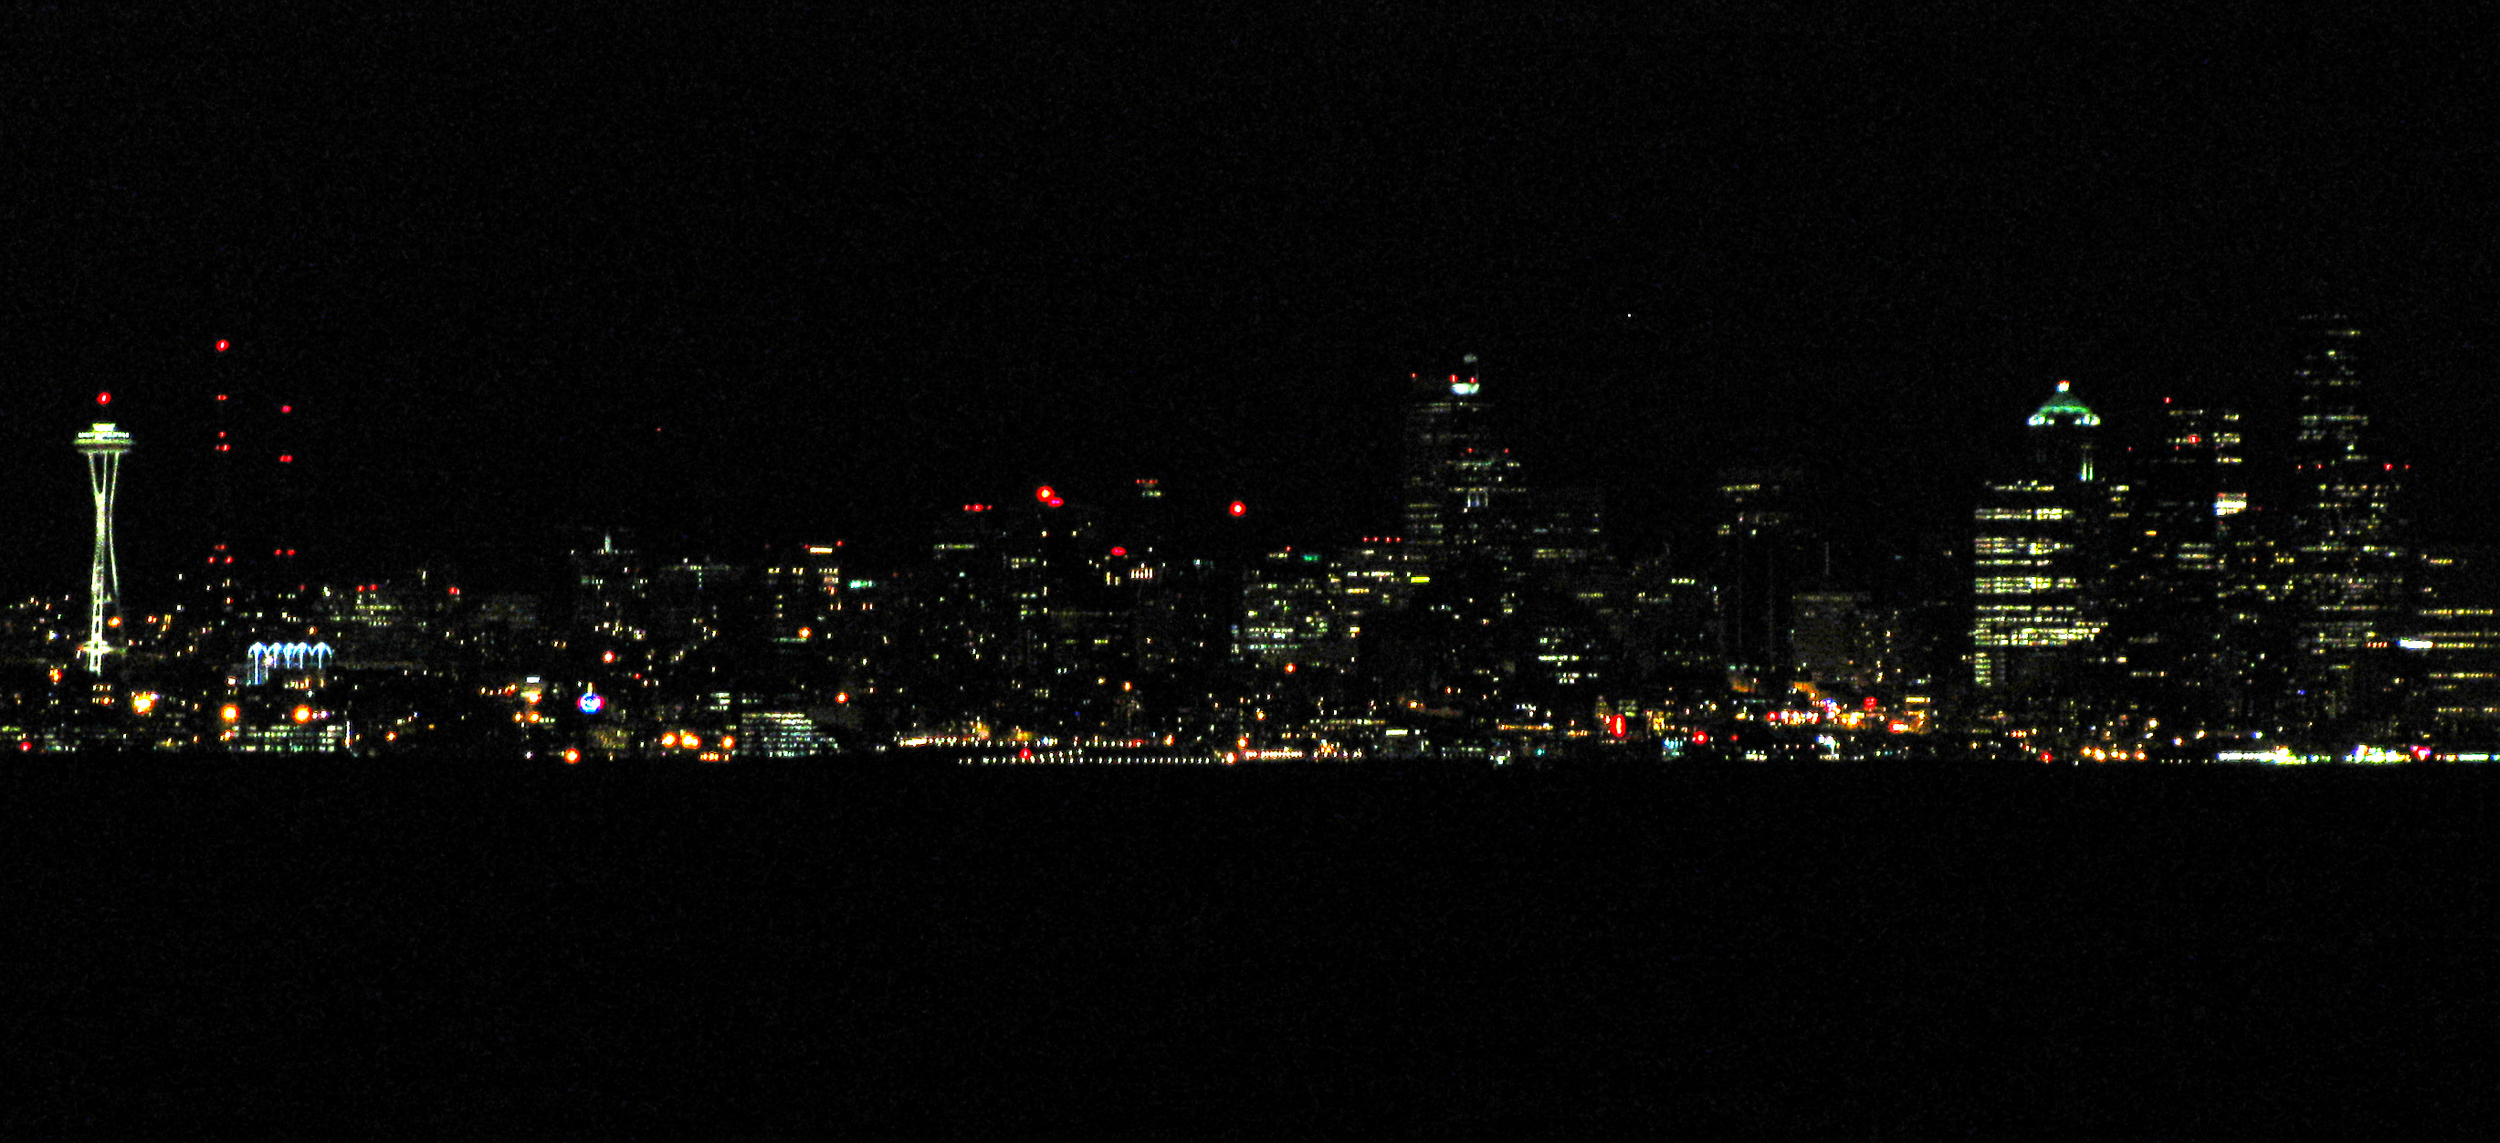 nighttime-skyline